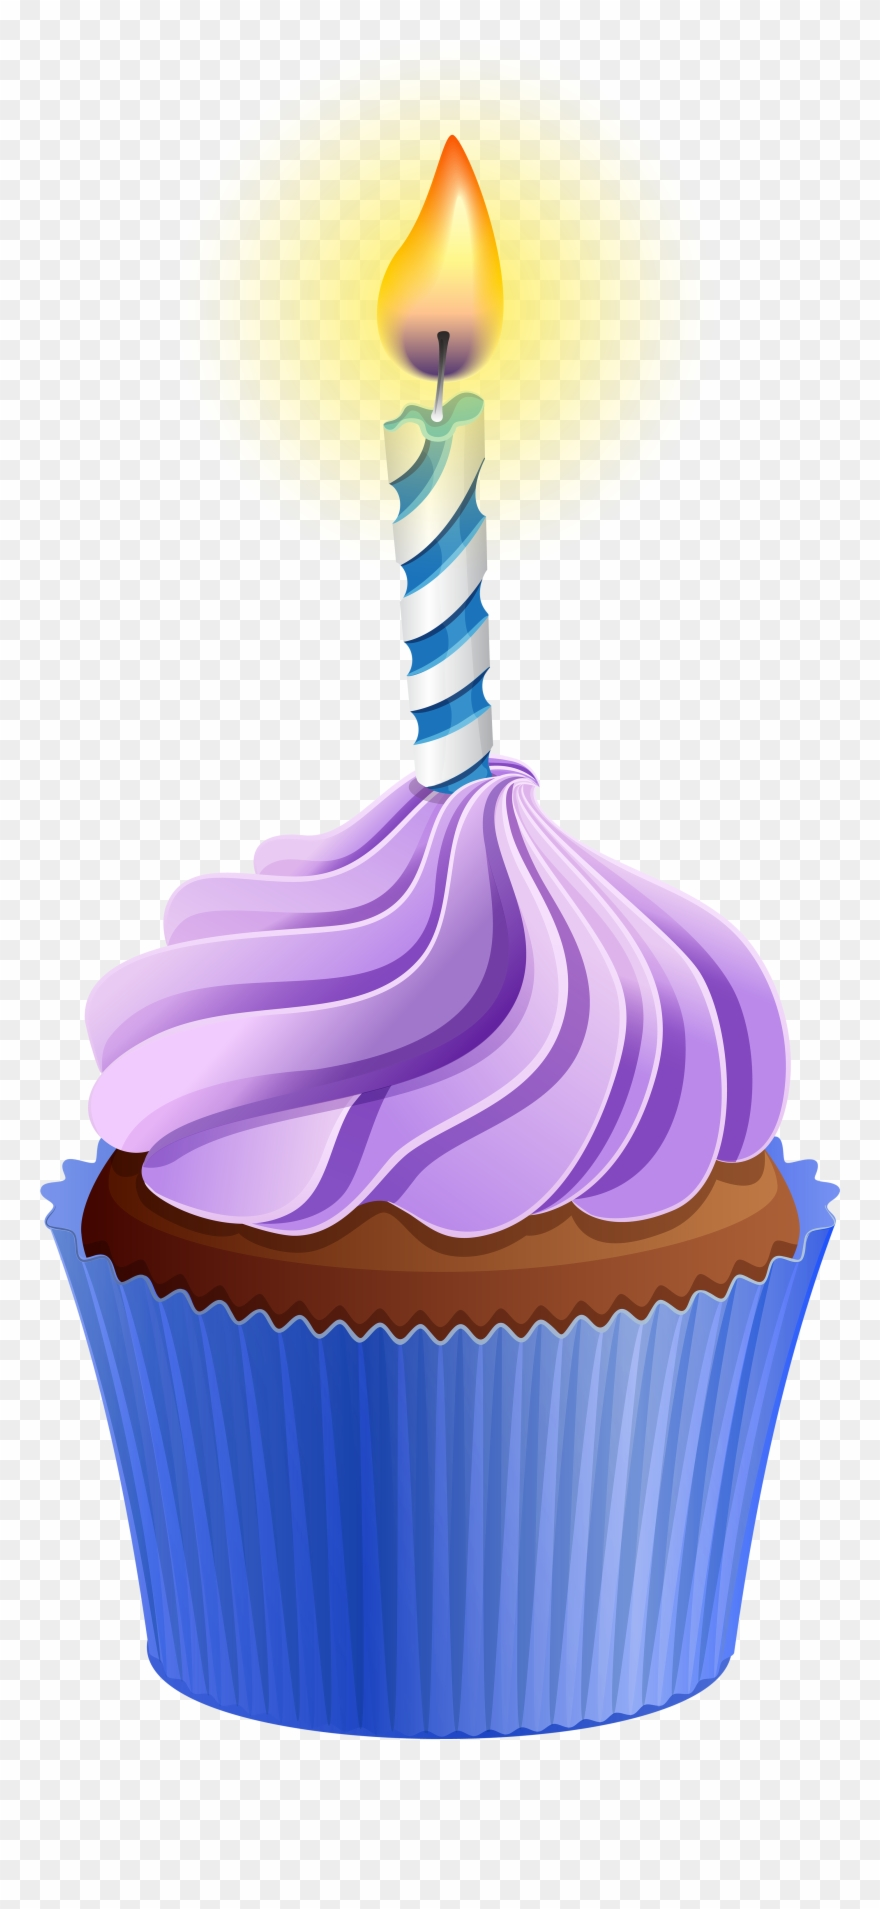 Cupcake With Candle Clipart.